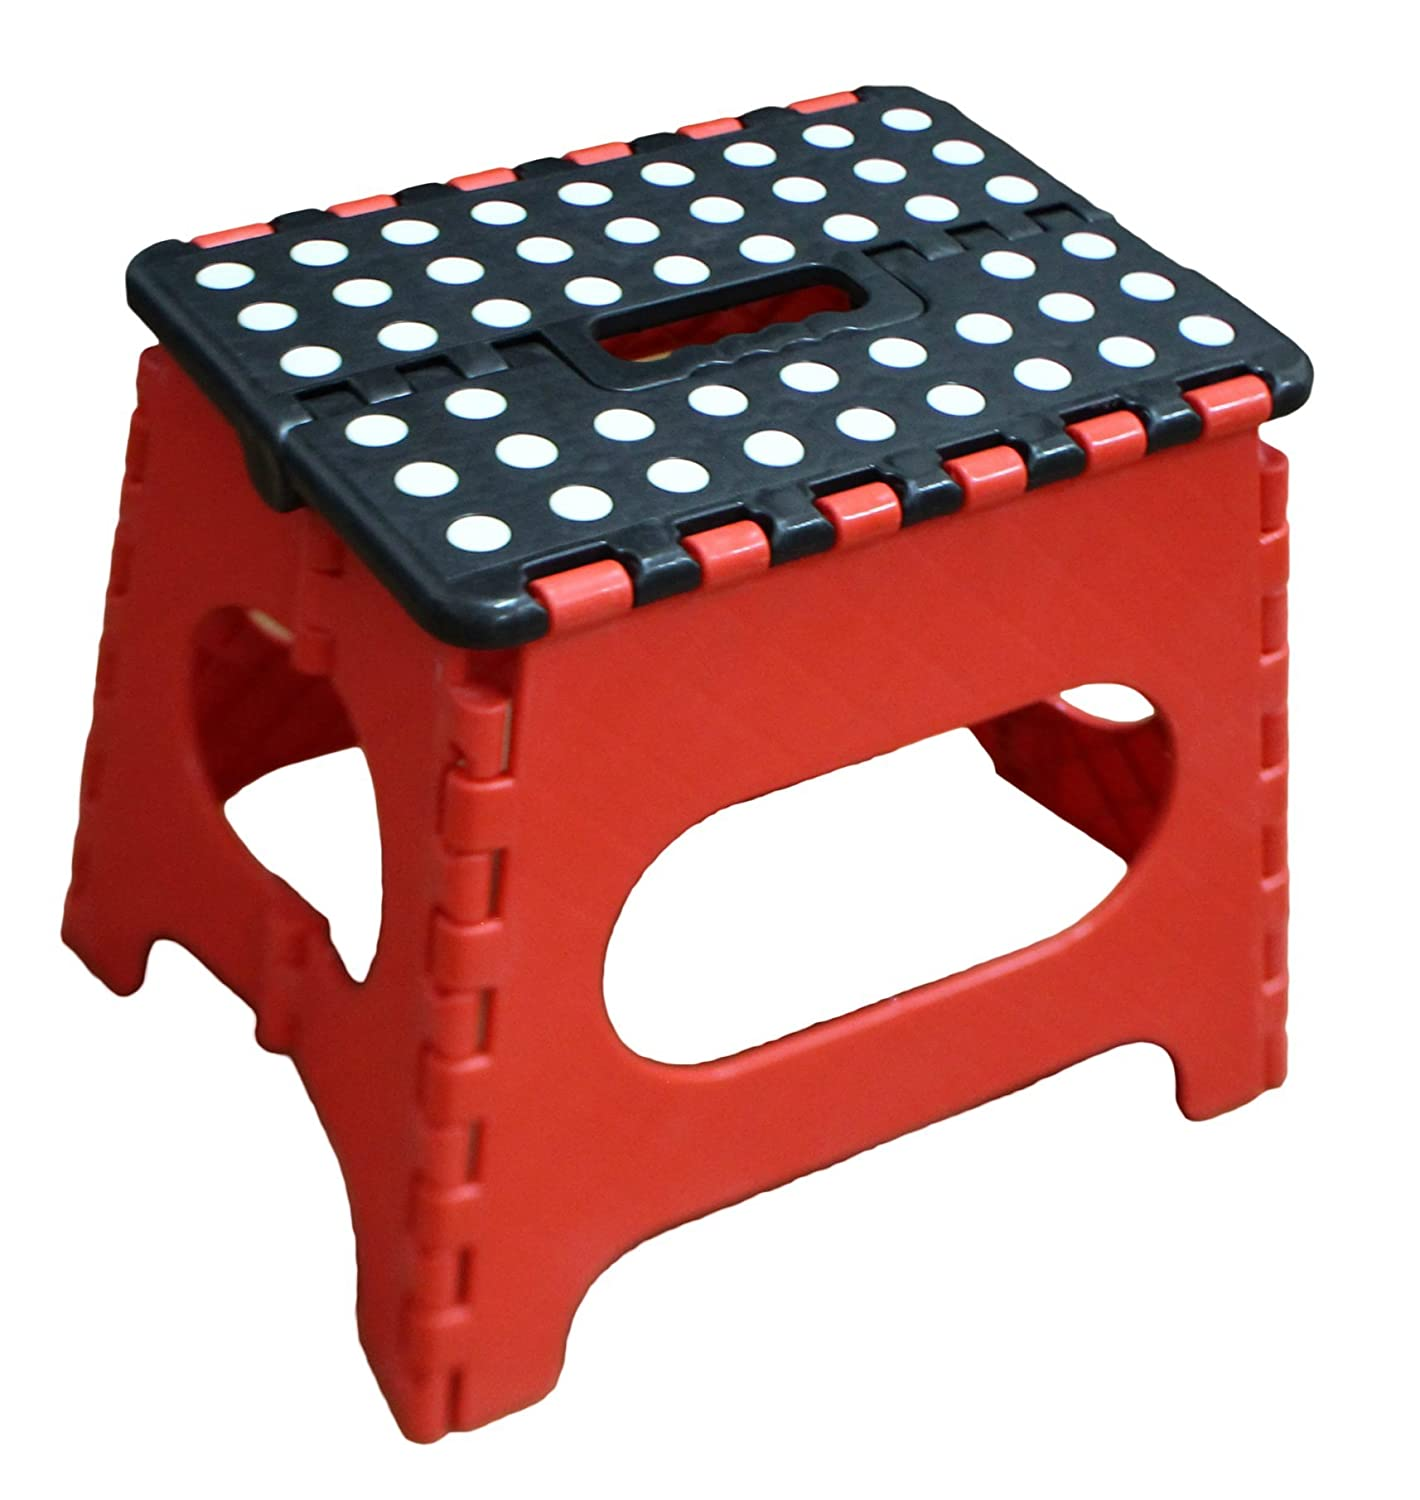 10 Best Folding Step Stools For Adults List And Reviews